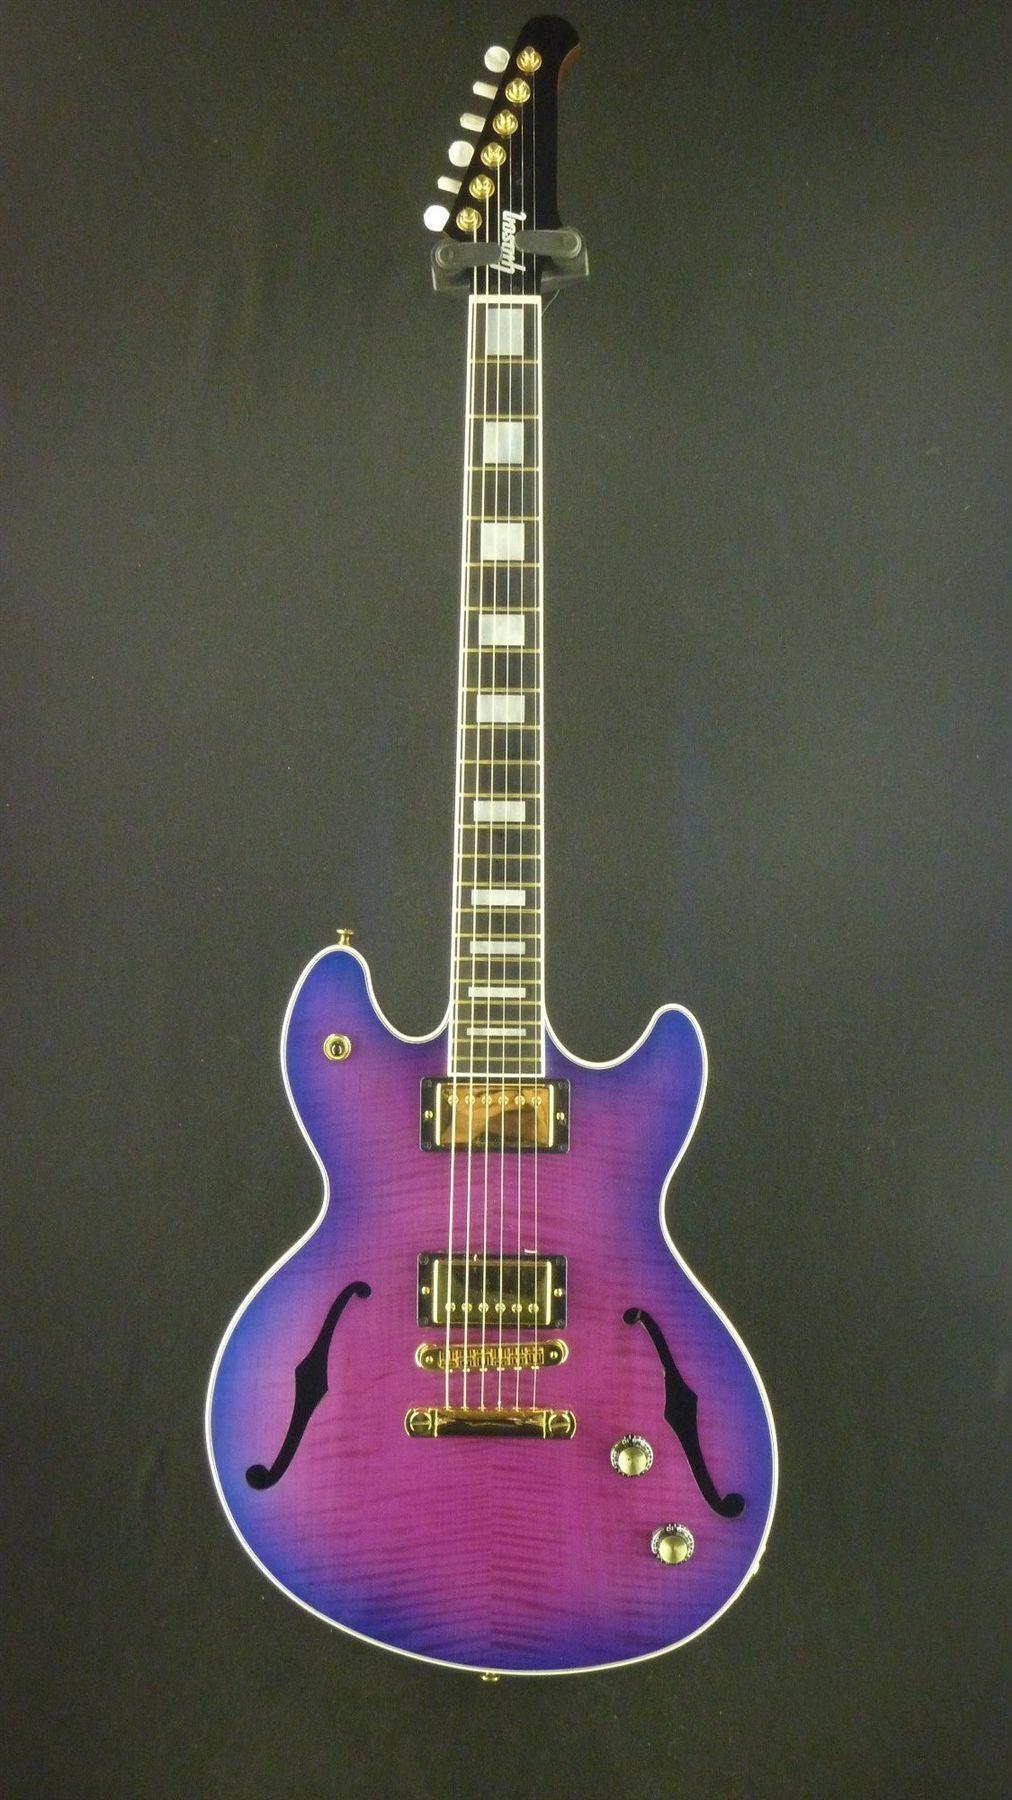 gibson vegas high roller used neon guitar cool guitar gibson guitars purple guitar. Black Bedroom Furniture Sets. Home Design Ideas